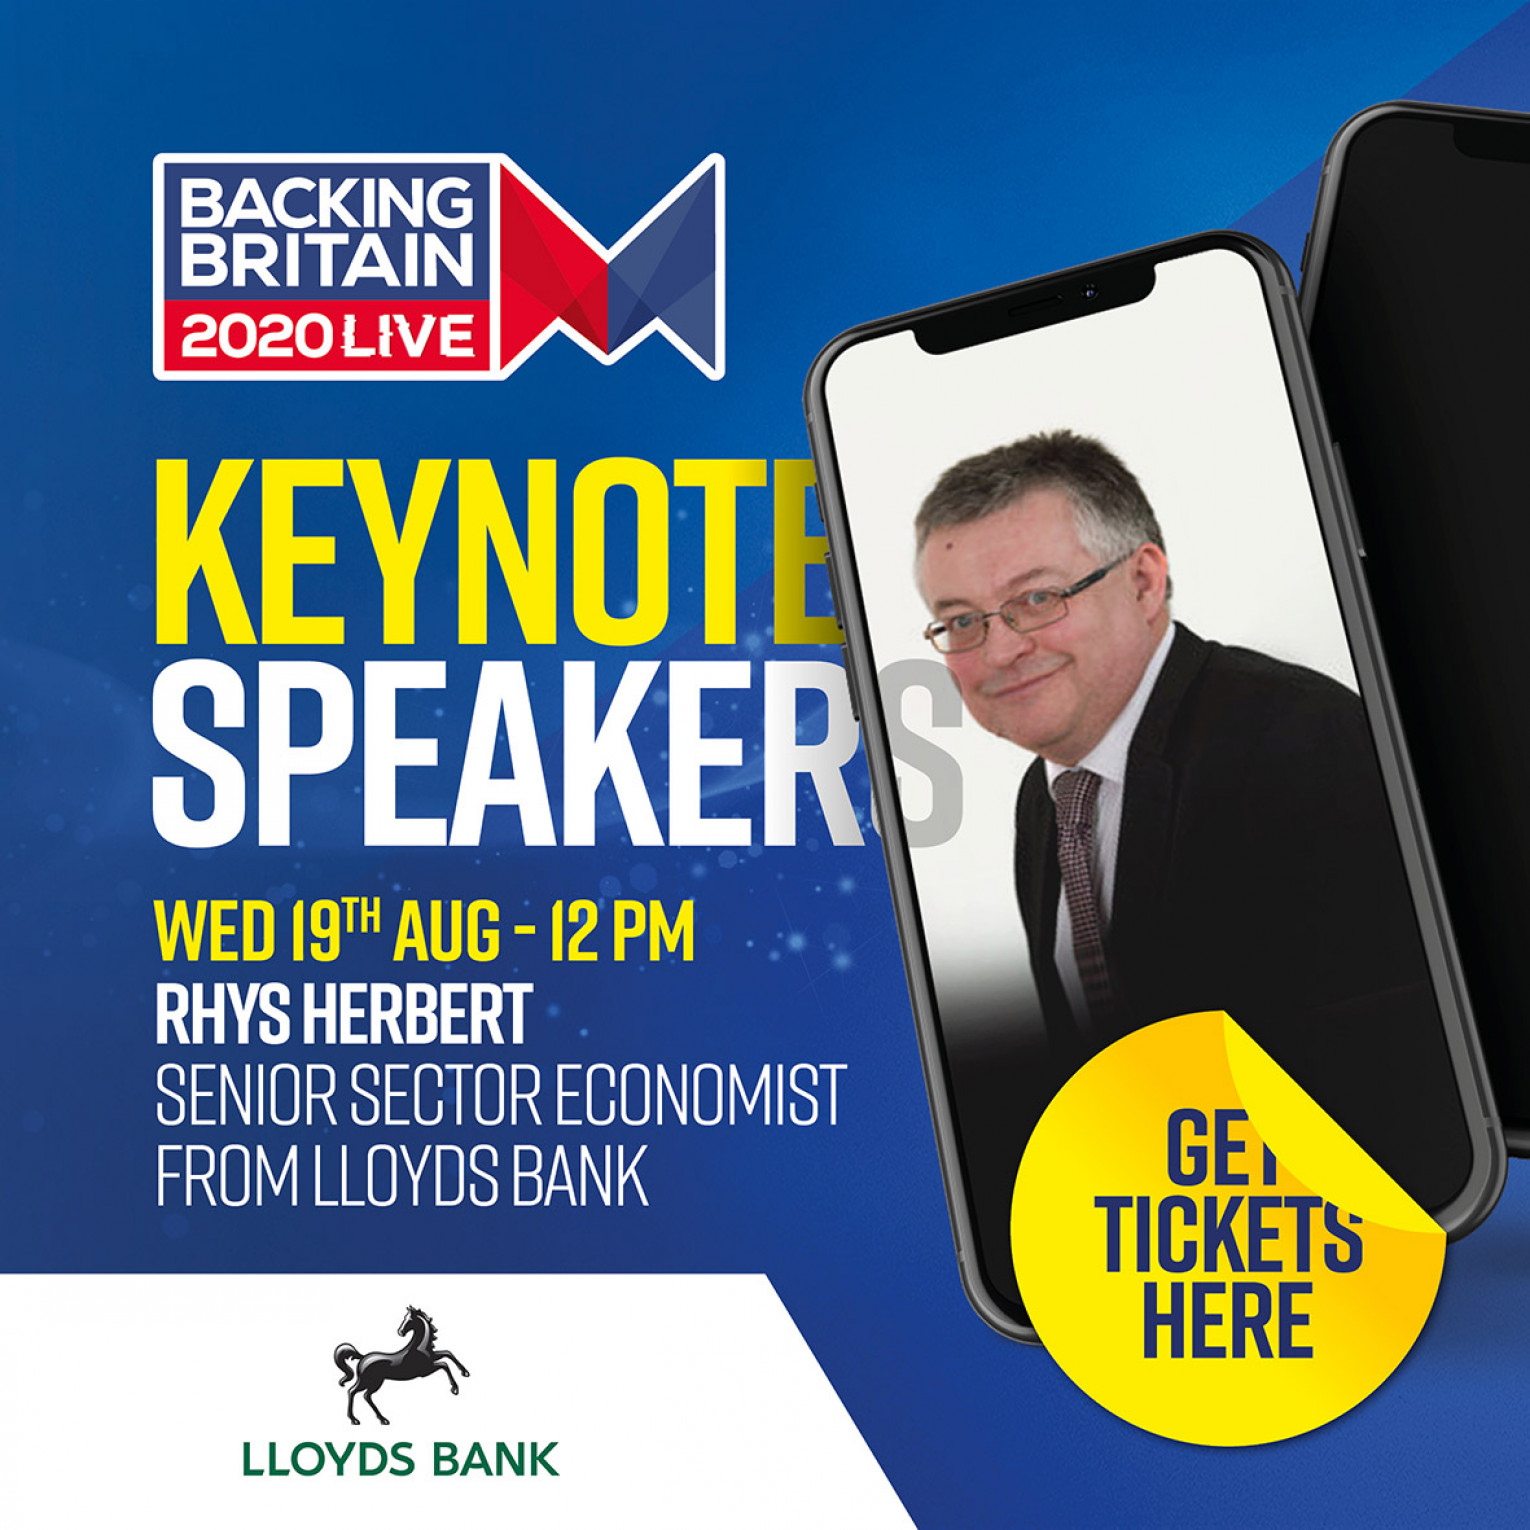 Keynote speaker - Rhys Herbert Senior Sector Economist for Lloyds Bank